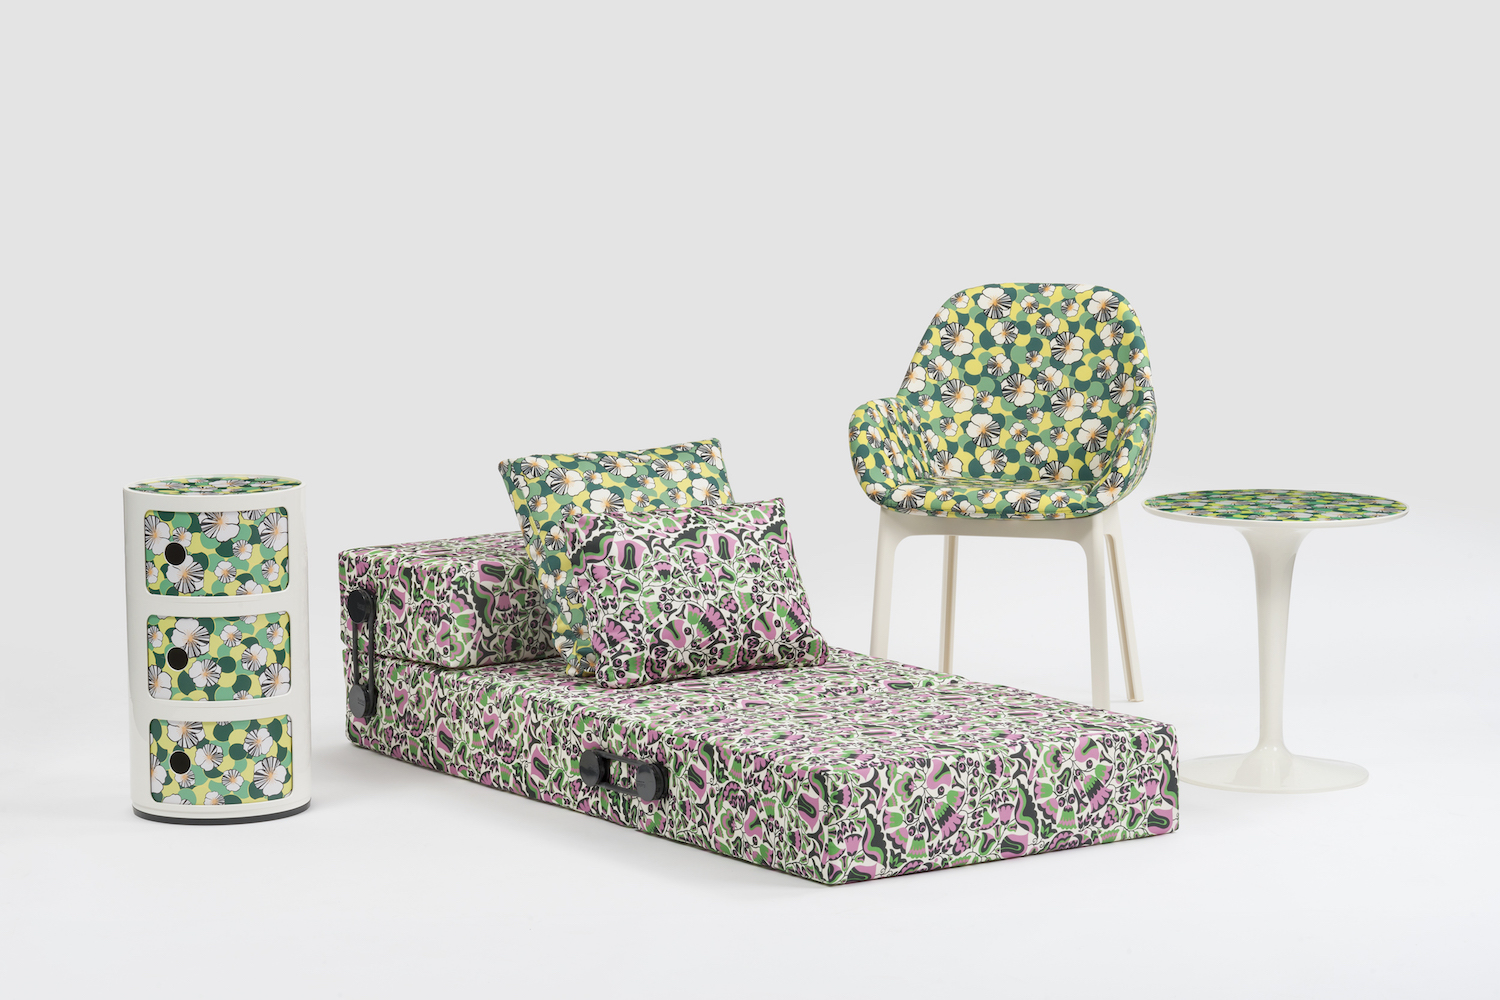 Futon World Berlin Products Michele Safra Interiors